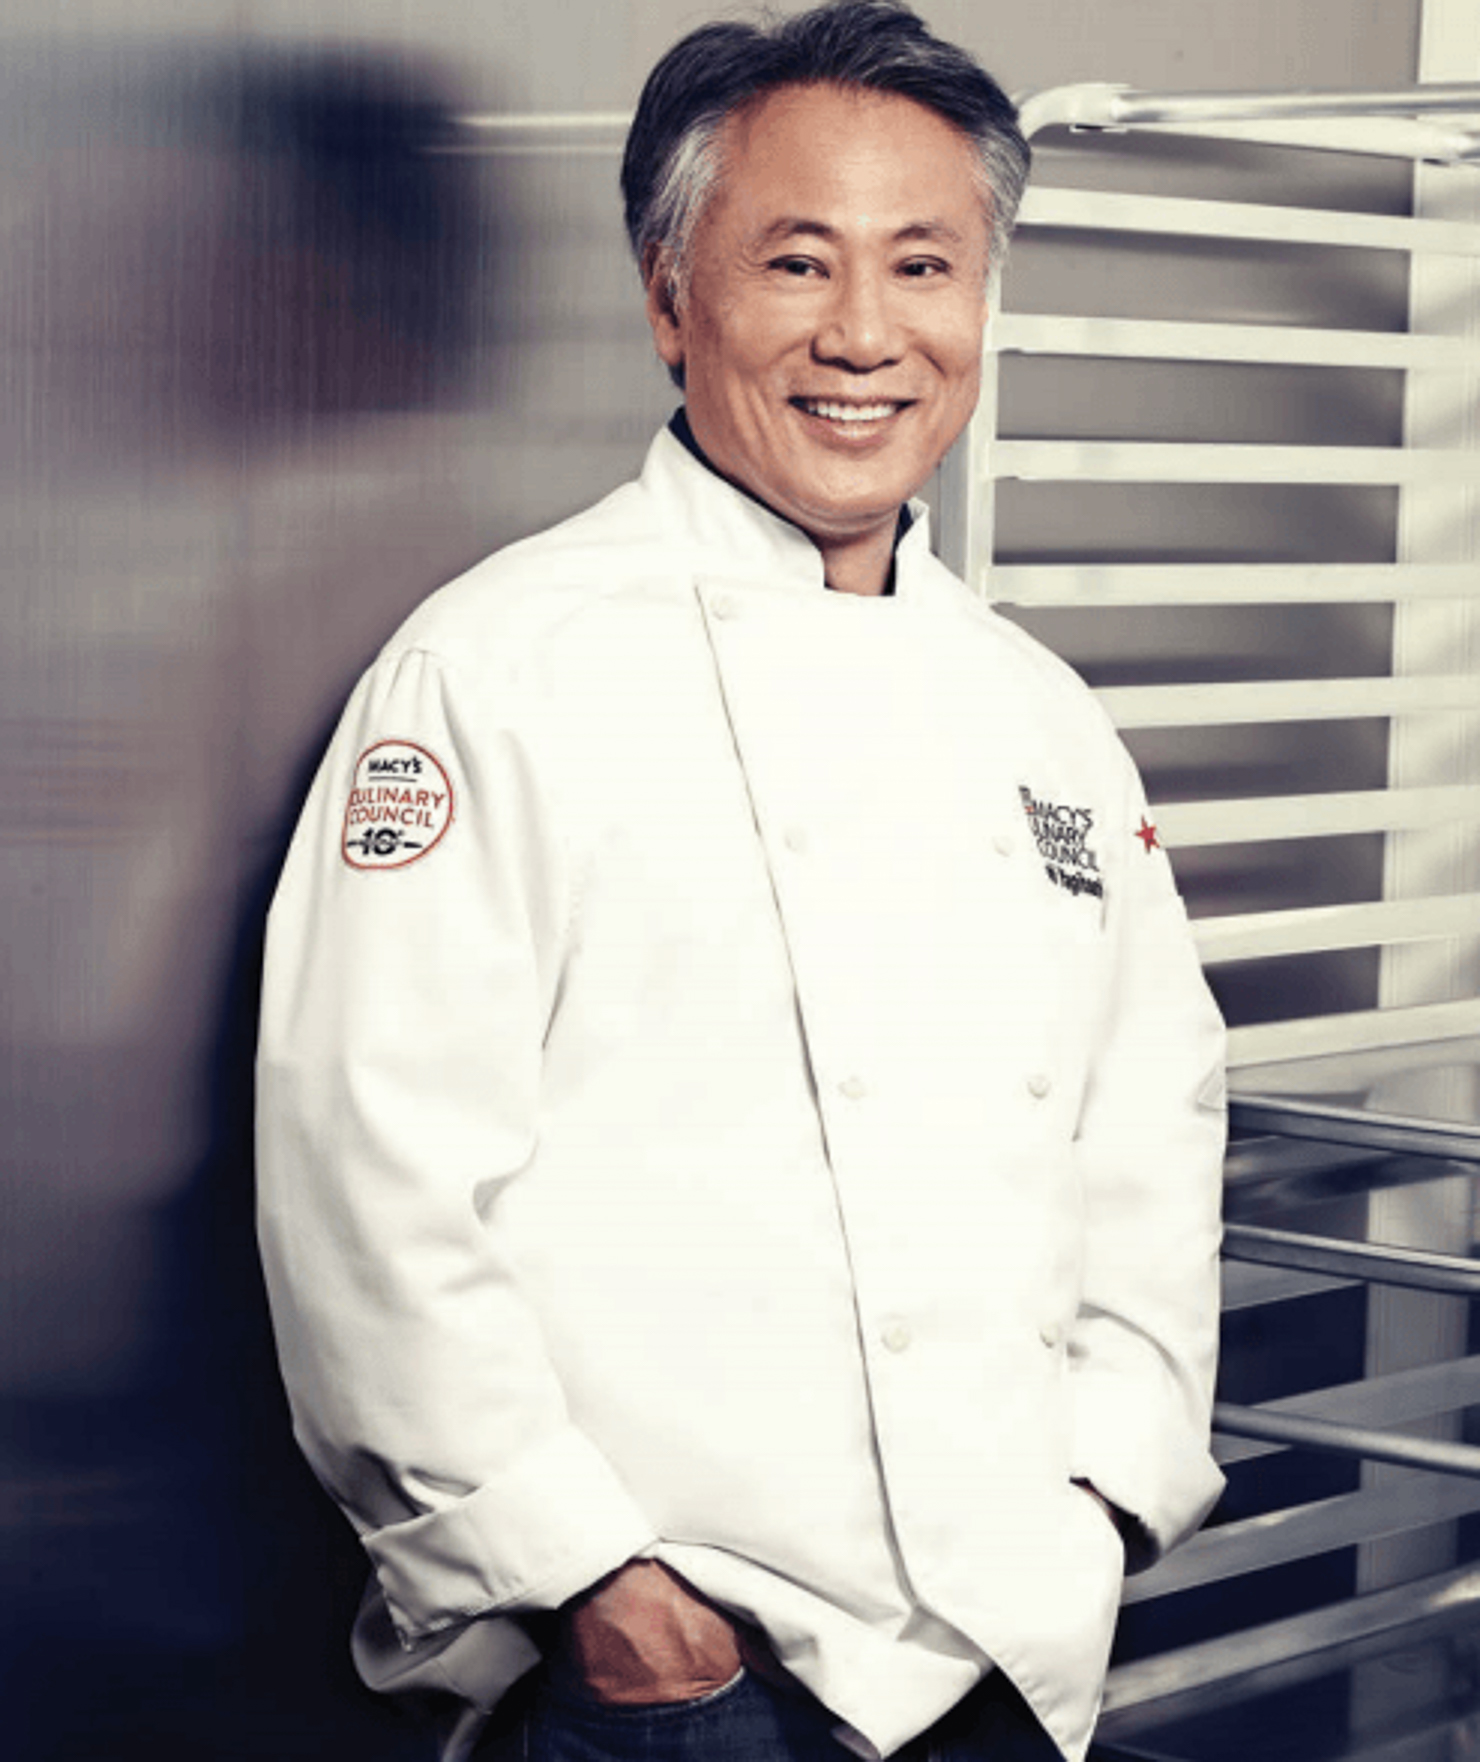 Macy's Culinary Council, Chef Takashi Yagihashi